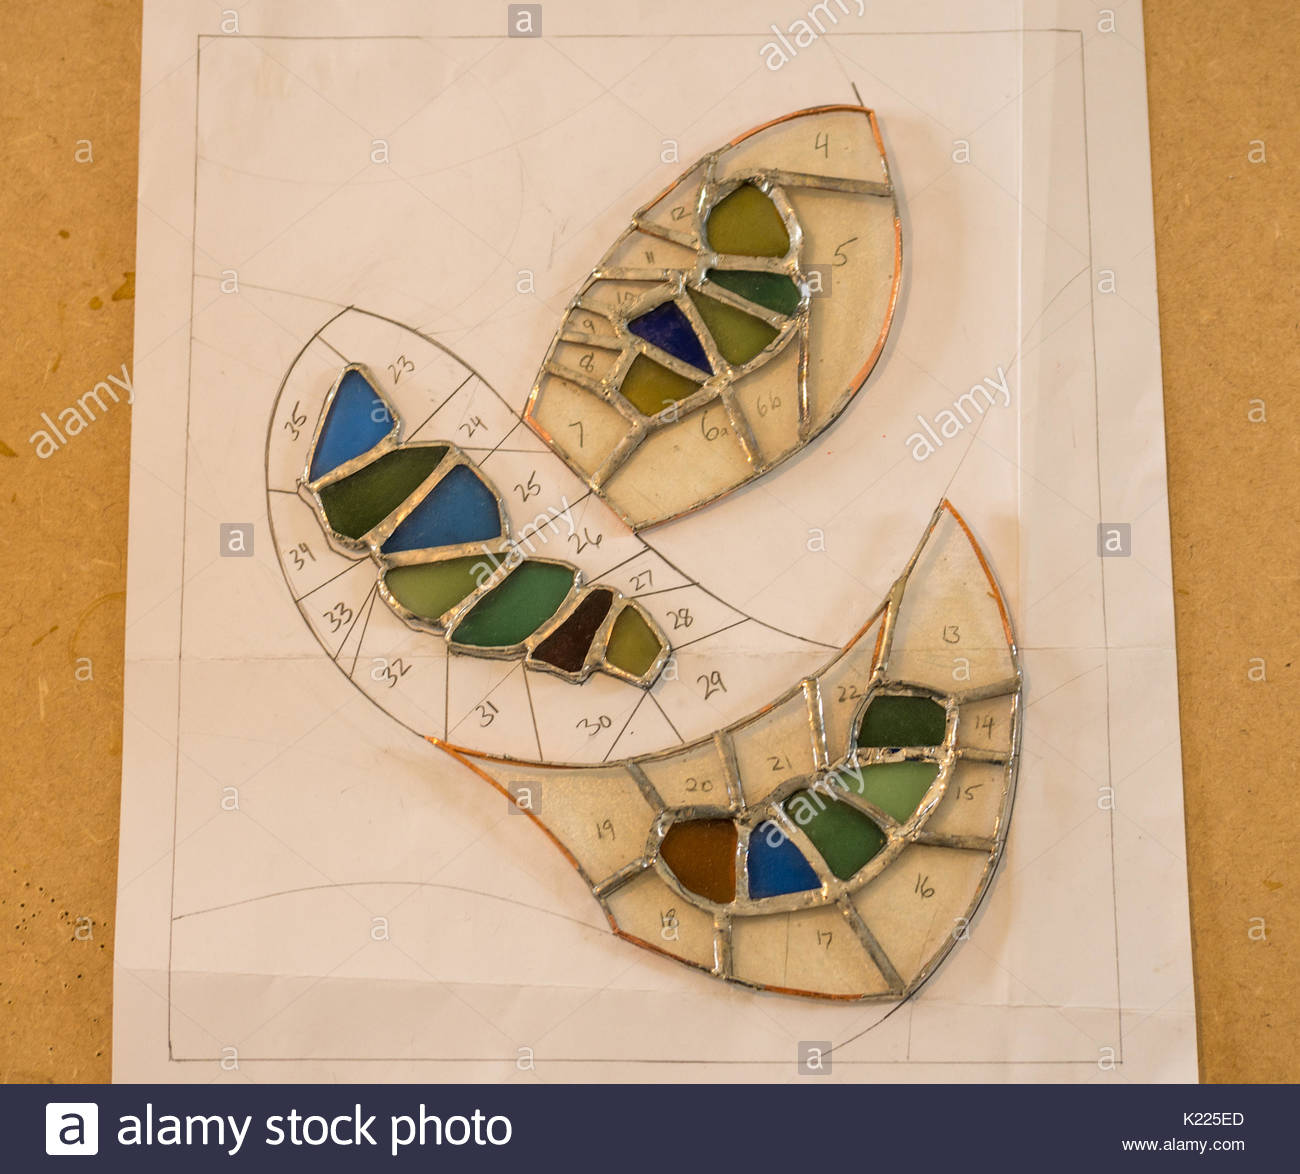 Work in progress with numbered shapes making stained glass and sea glass art work on a work board using copper foil Stock Photo